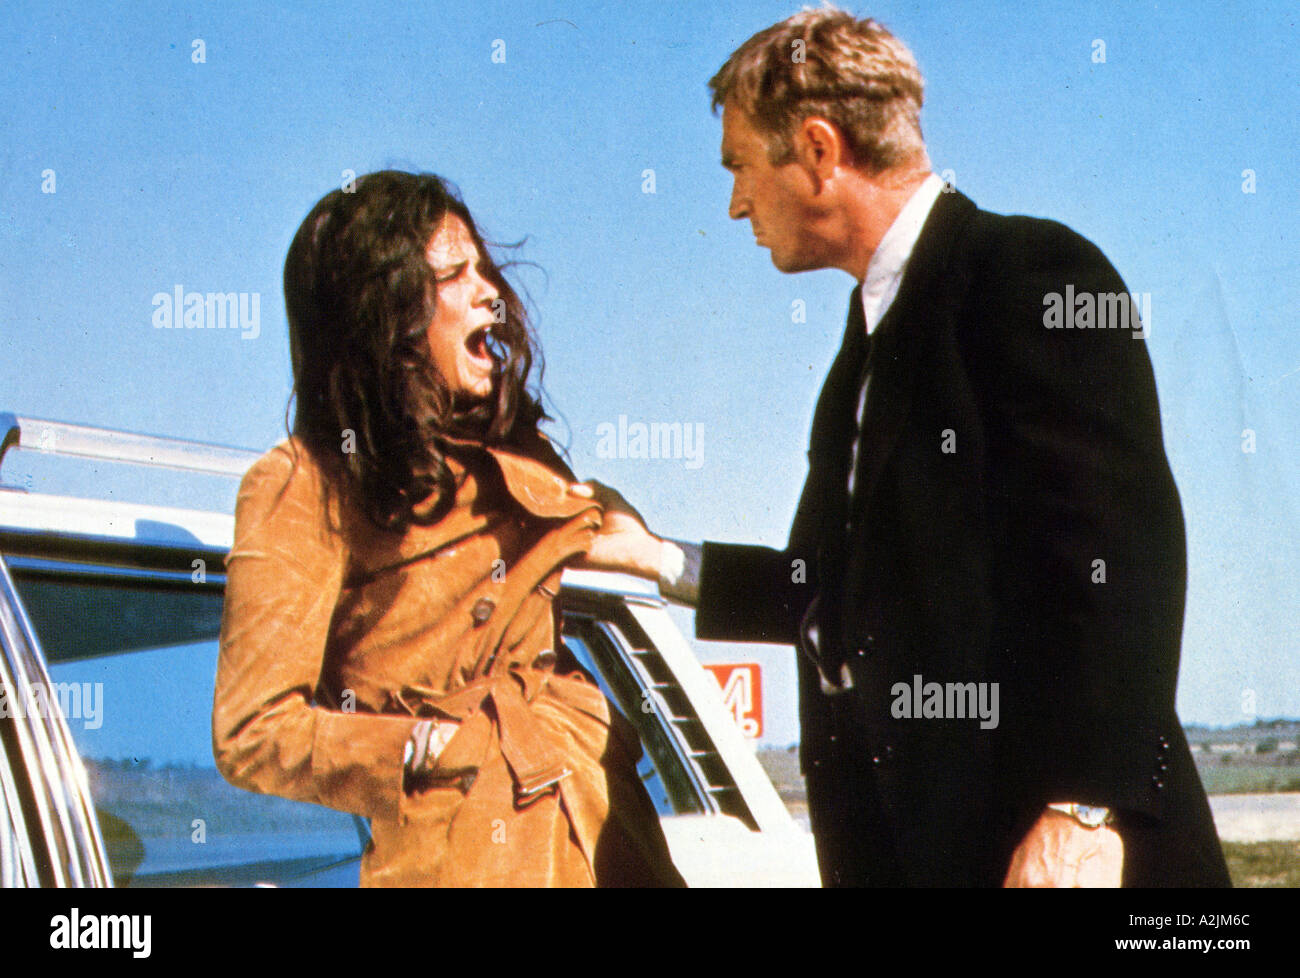 GETAWAY 1972 film with Steve McQueen and Ali MacGraw - Stock Image